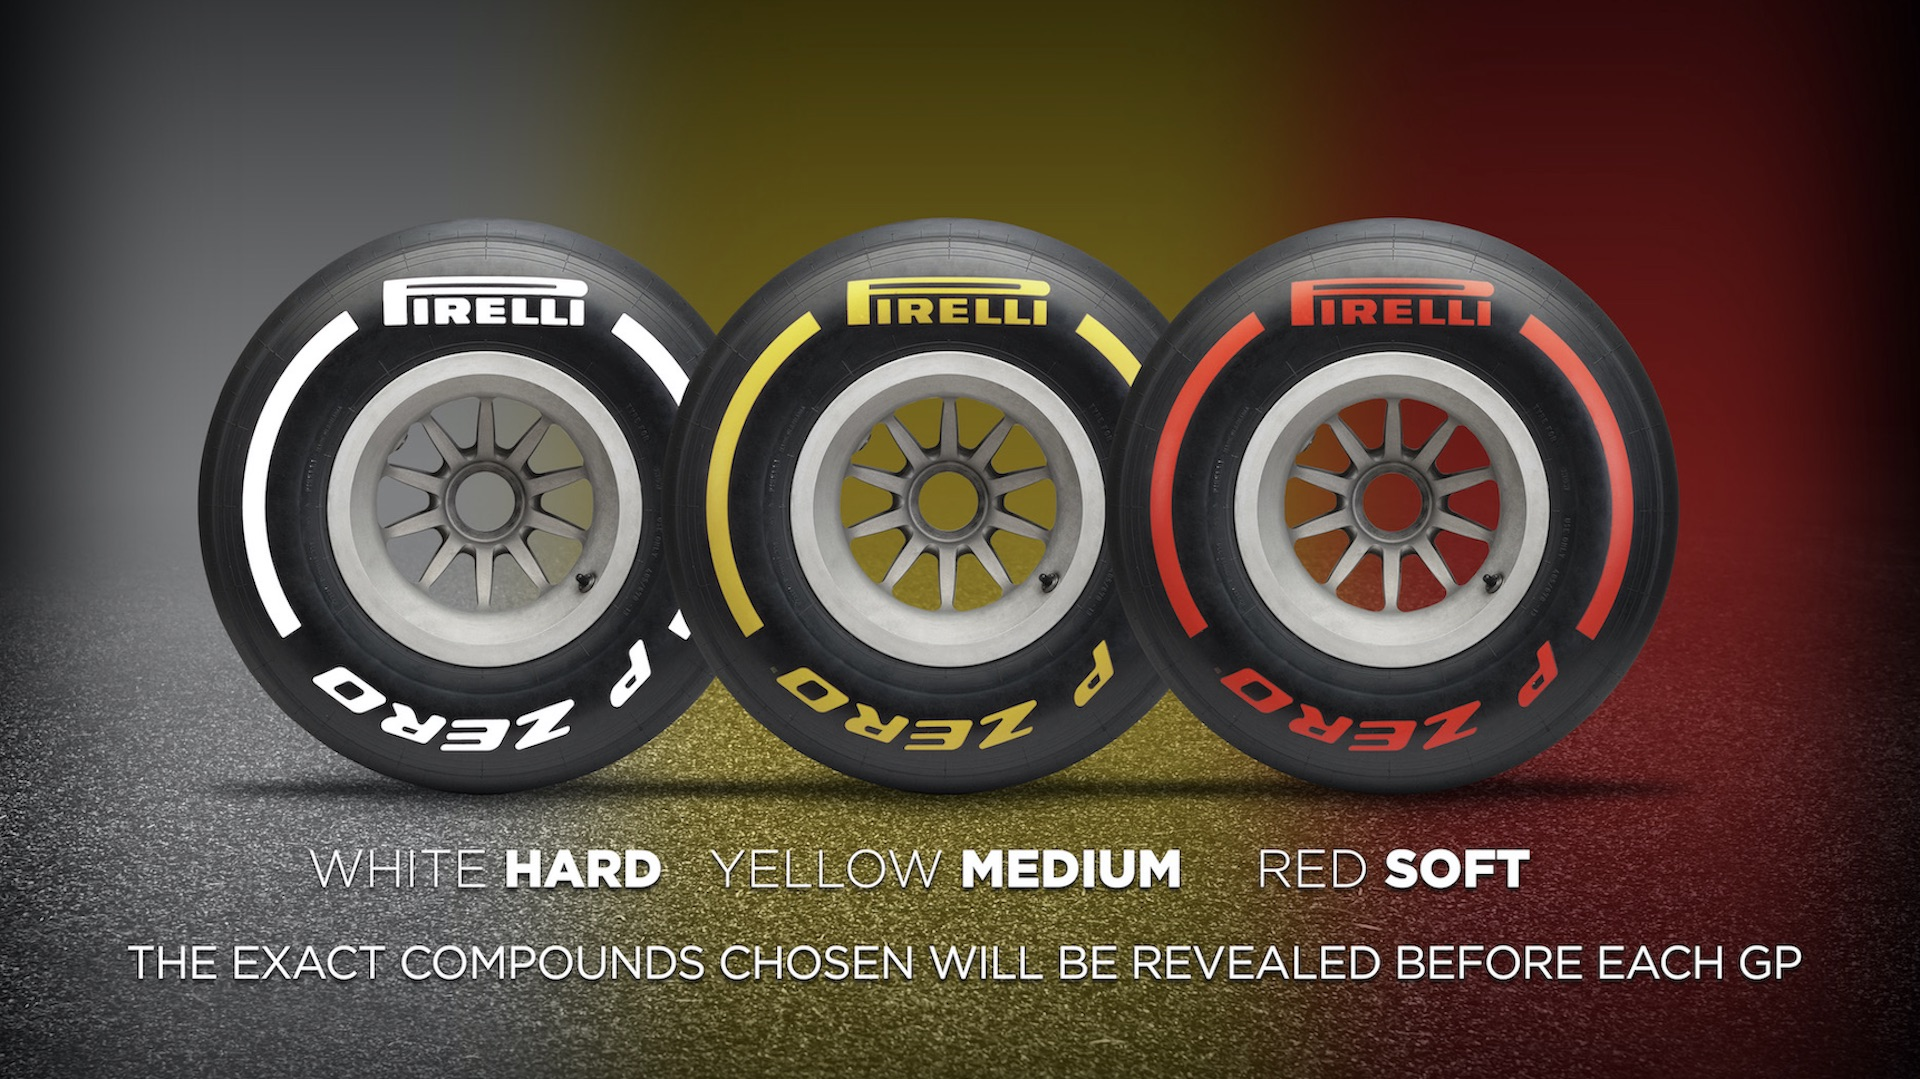 Pirelli Makes It Easier To Understand F1 Tire Choices